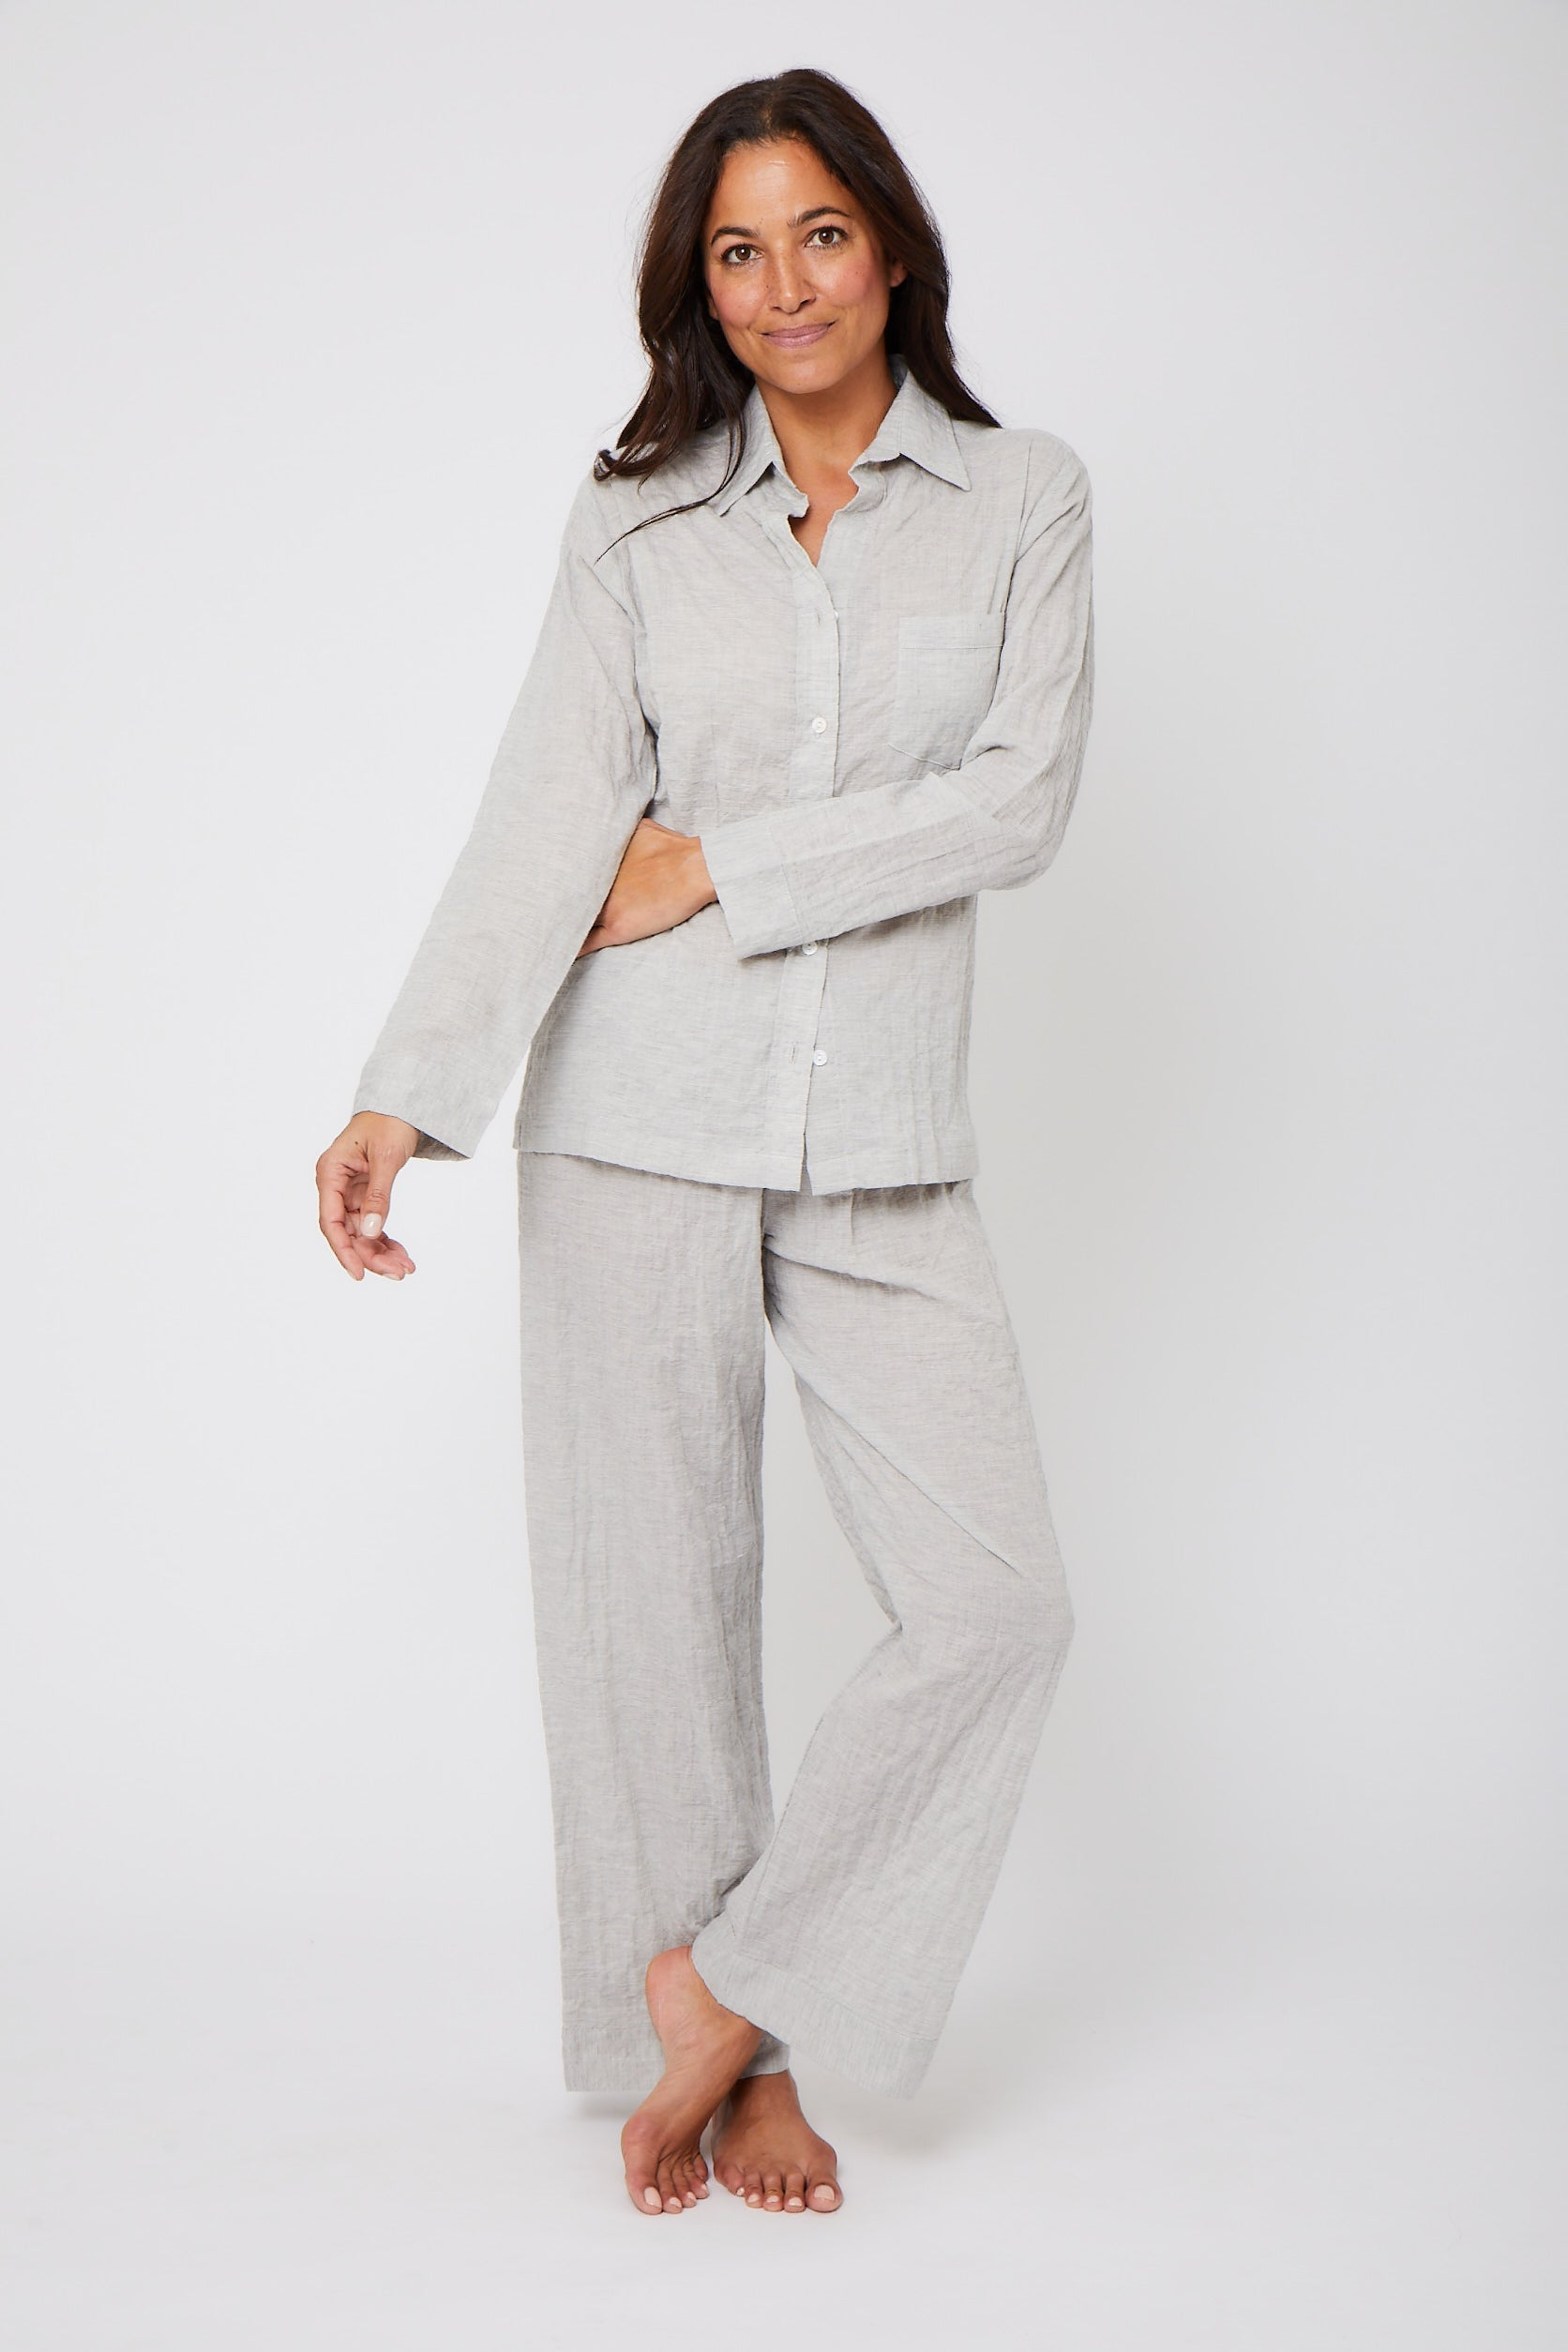 PLF_022620_66_GREY_JAPANESE_COTTON_PJ_SET_1820